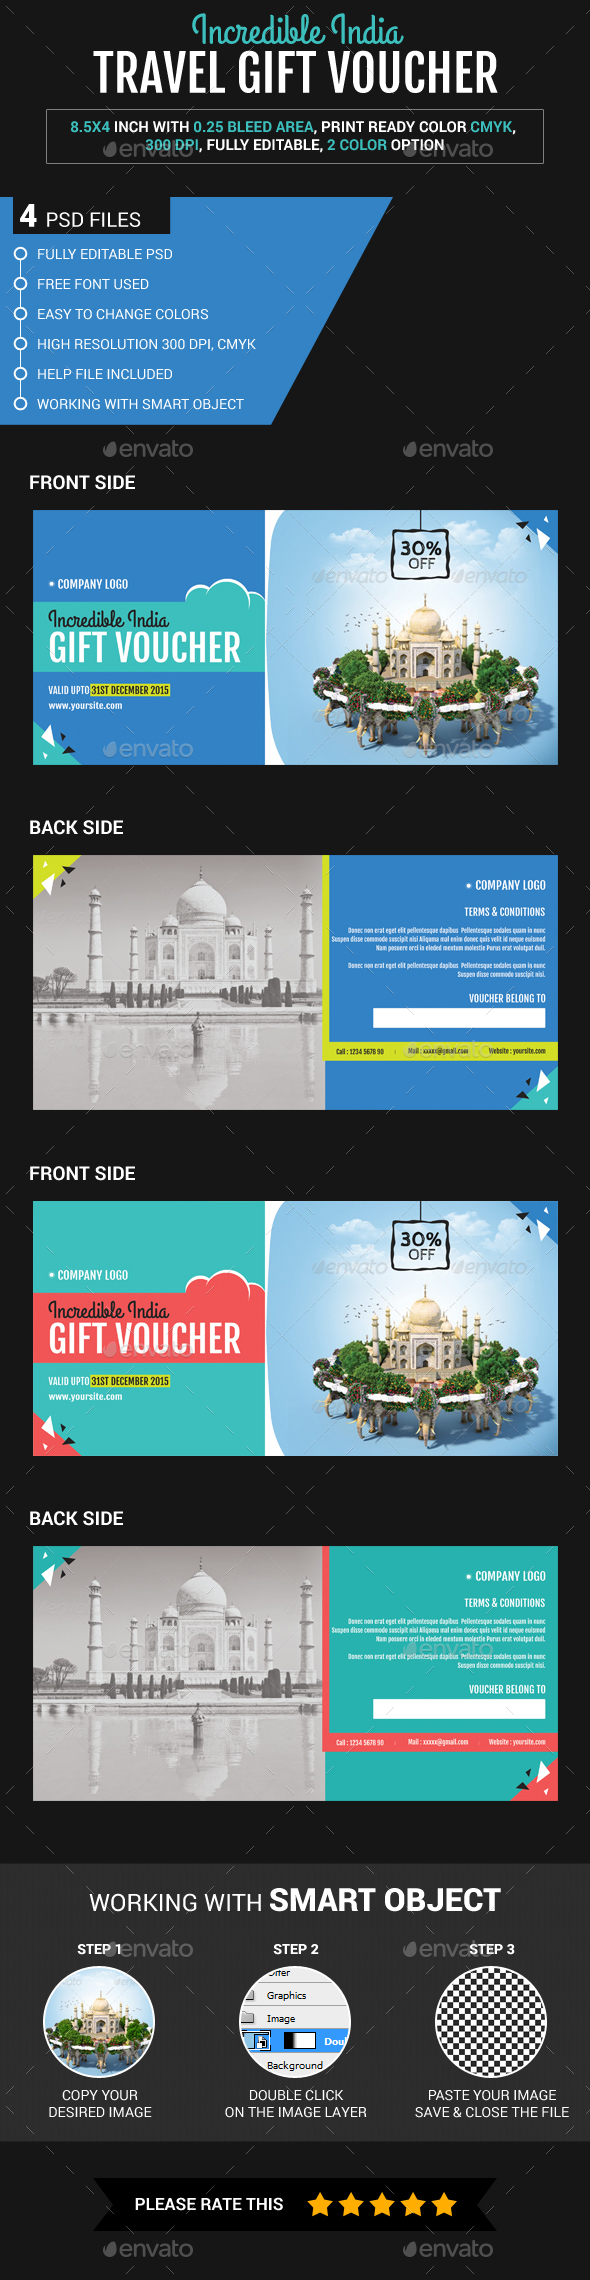 Incredible India Travel Gift Voucher - Loyalty Cards Cards & Invites